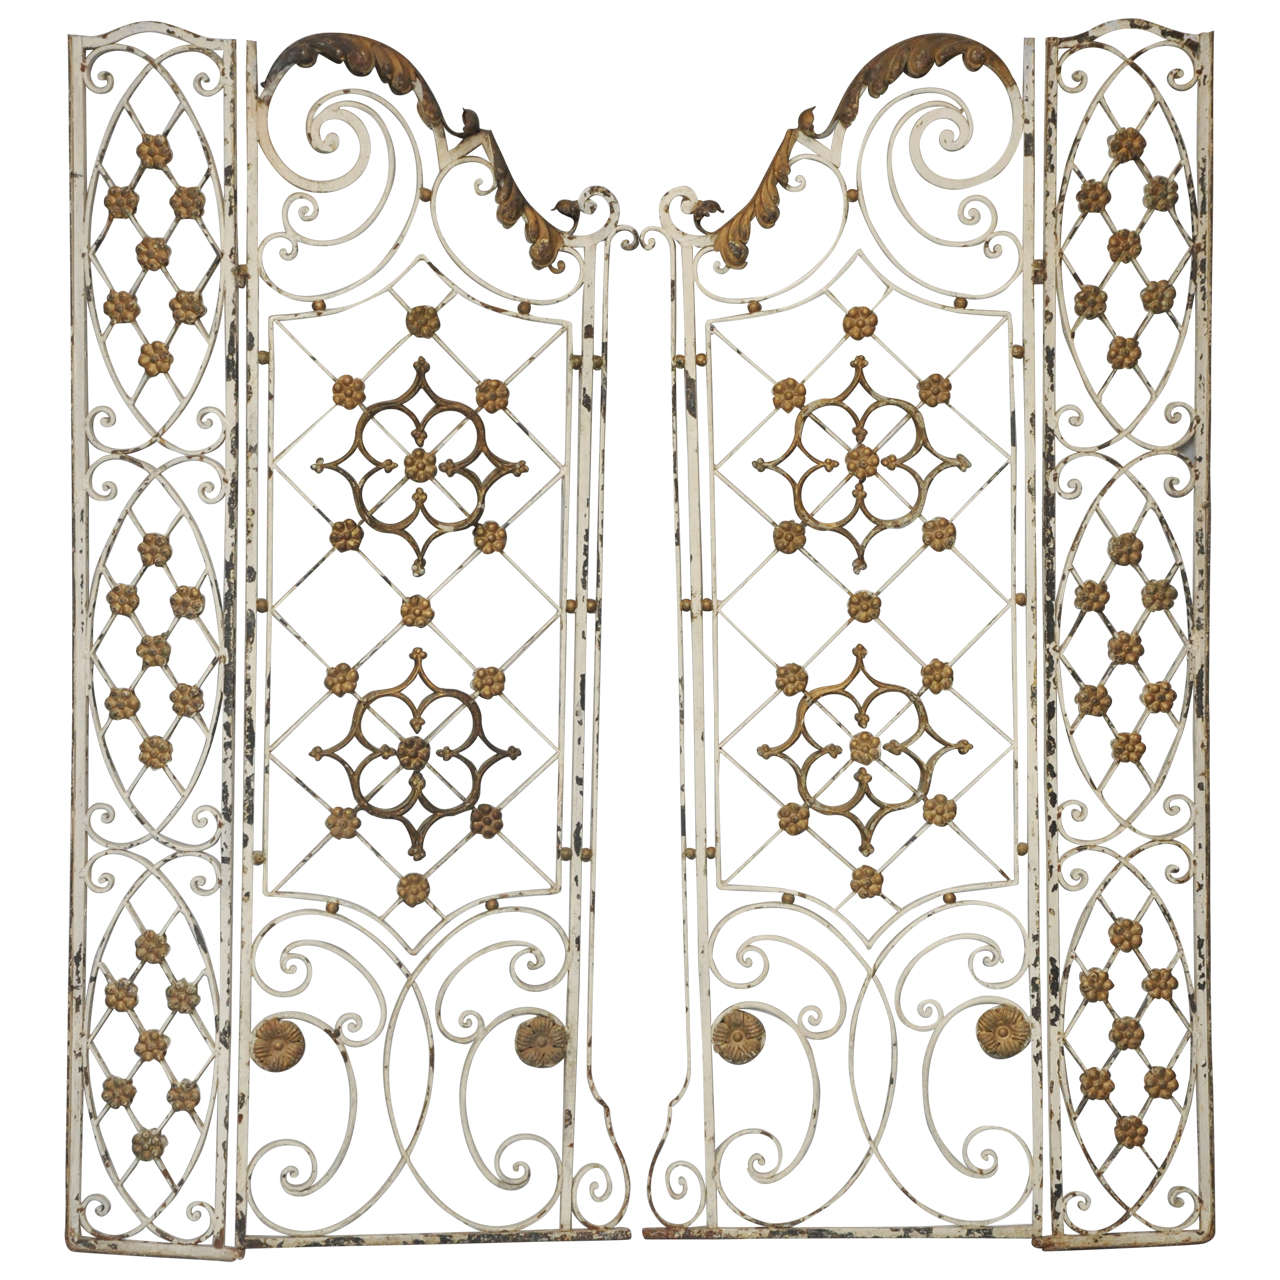 Pair of 19th Century French Painted Iron Gates